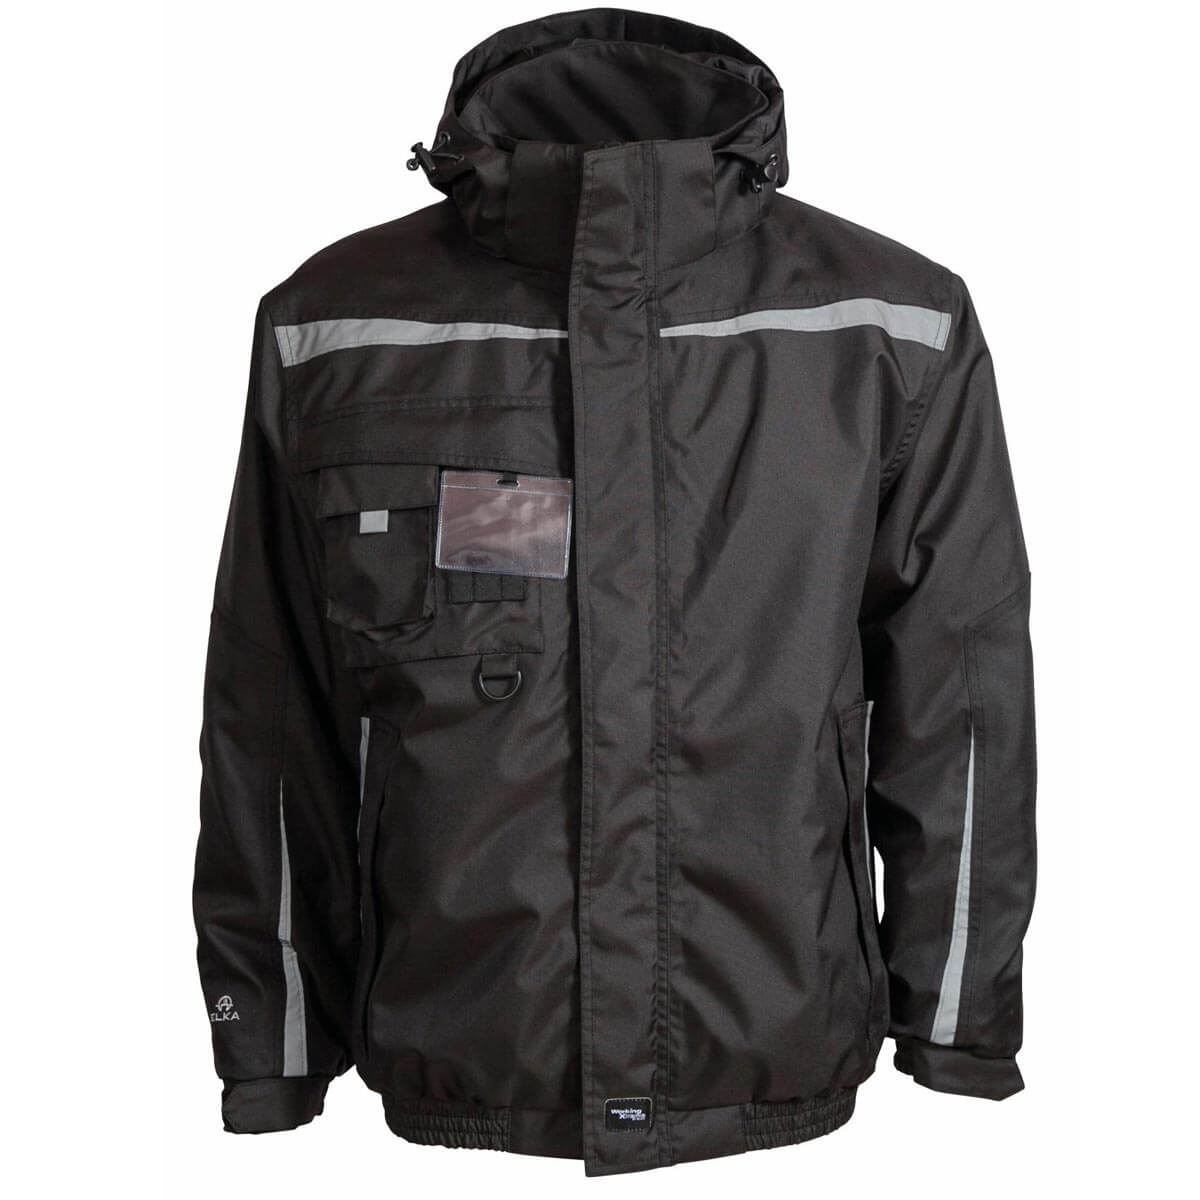 elka-working-xtreme-2-in-1-pilotenjacke-086104010